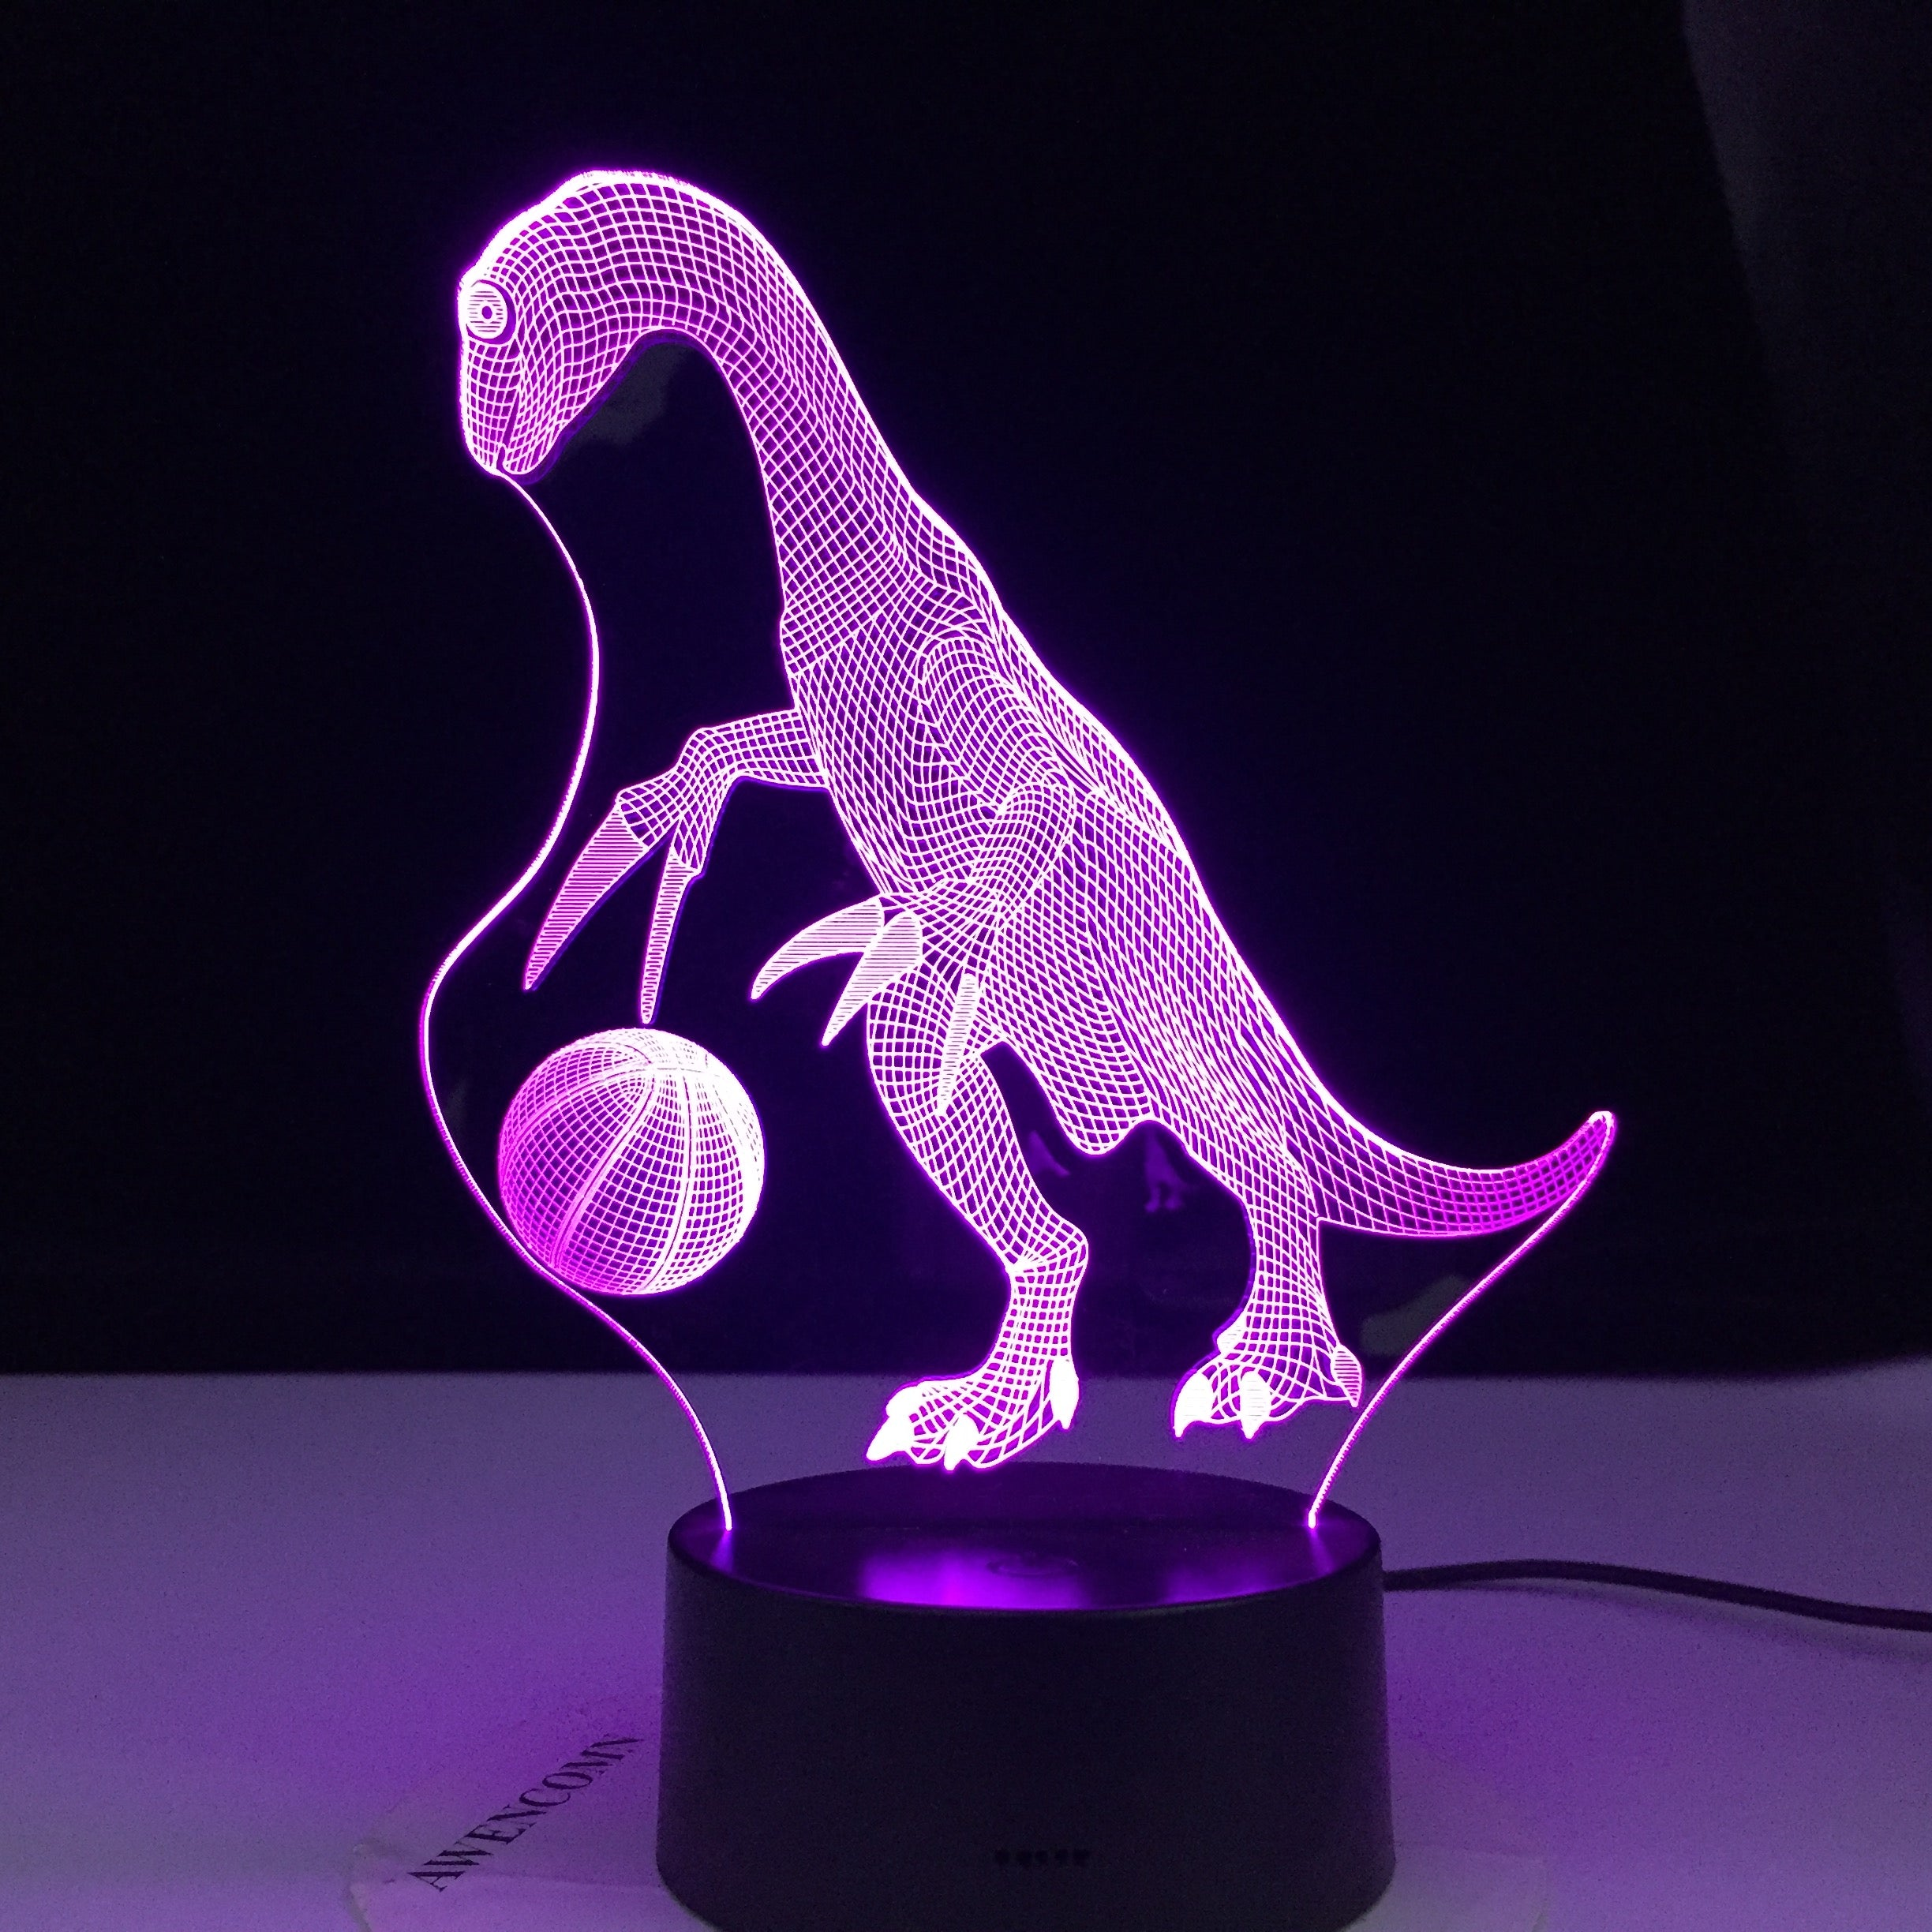 Dinosaur Playying Football 3D Illusion Led Lamp Colors Decoration Night Light Touch Sleeping Nightlight Table Lamp Boys Gifts